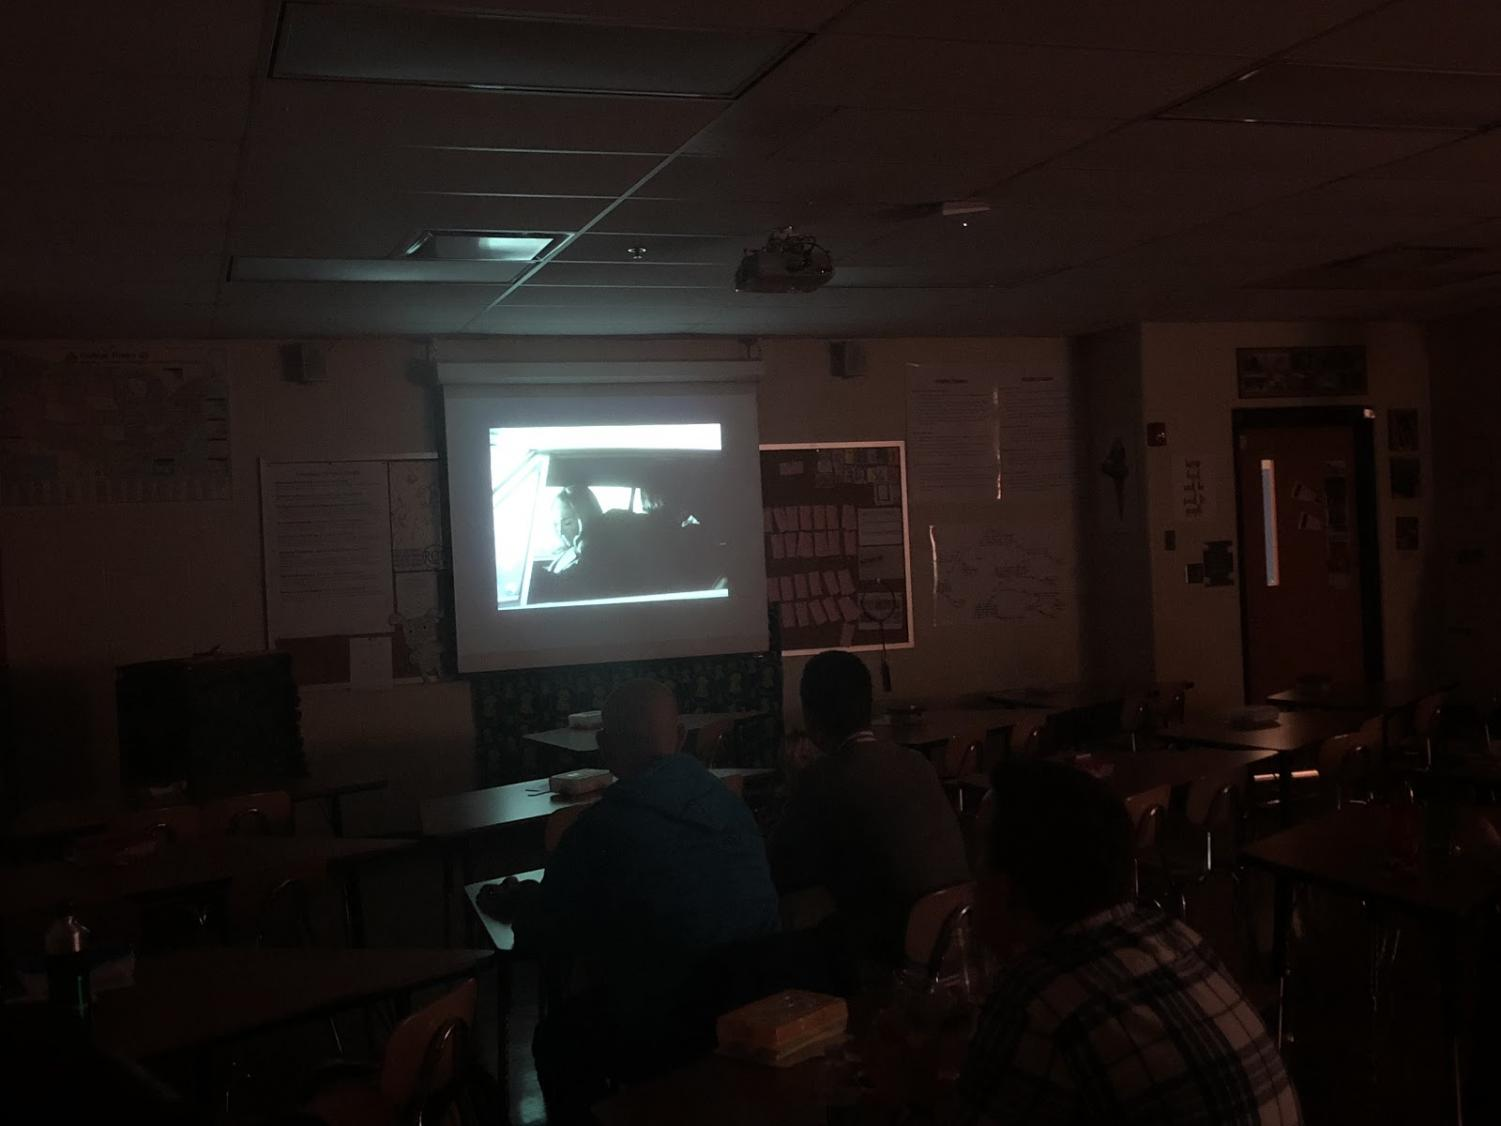 The Film Club meets in their personal theater in room 115, watching Night of the Living Dead.